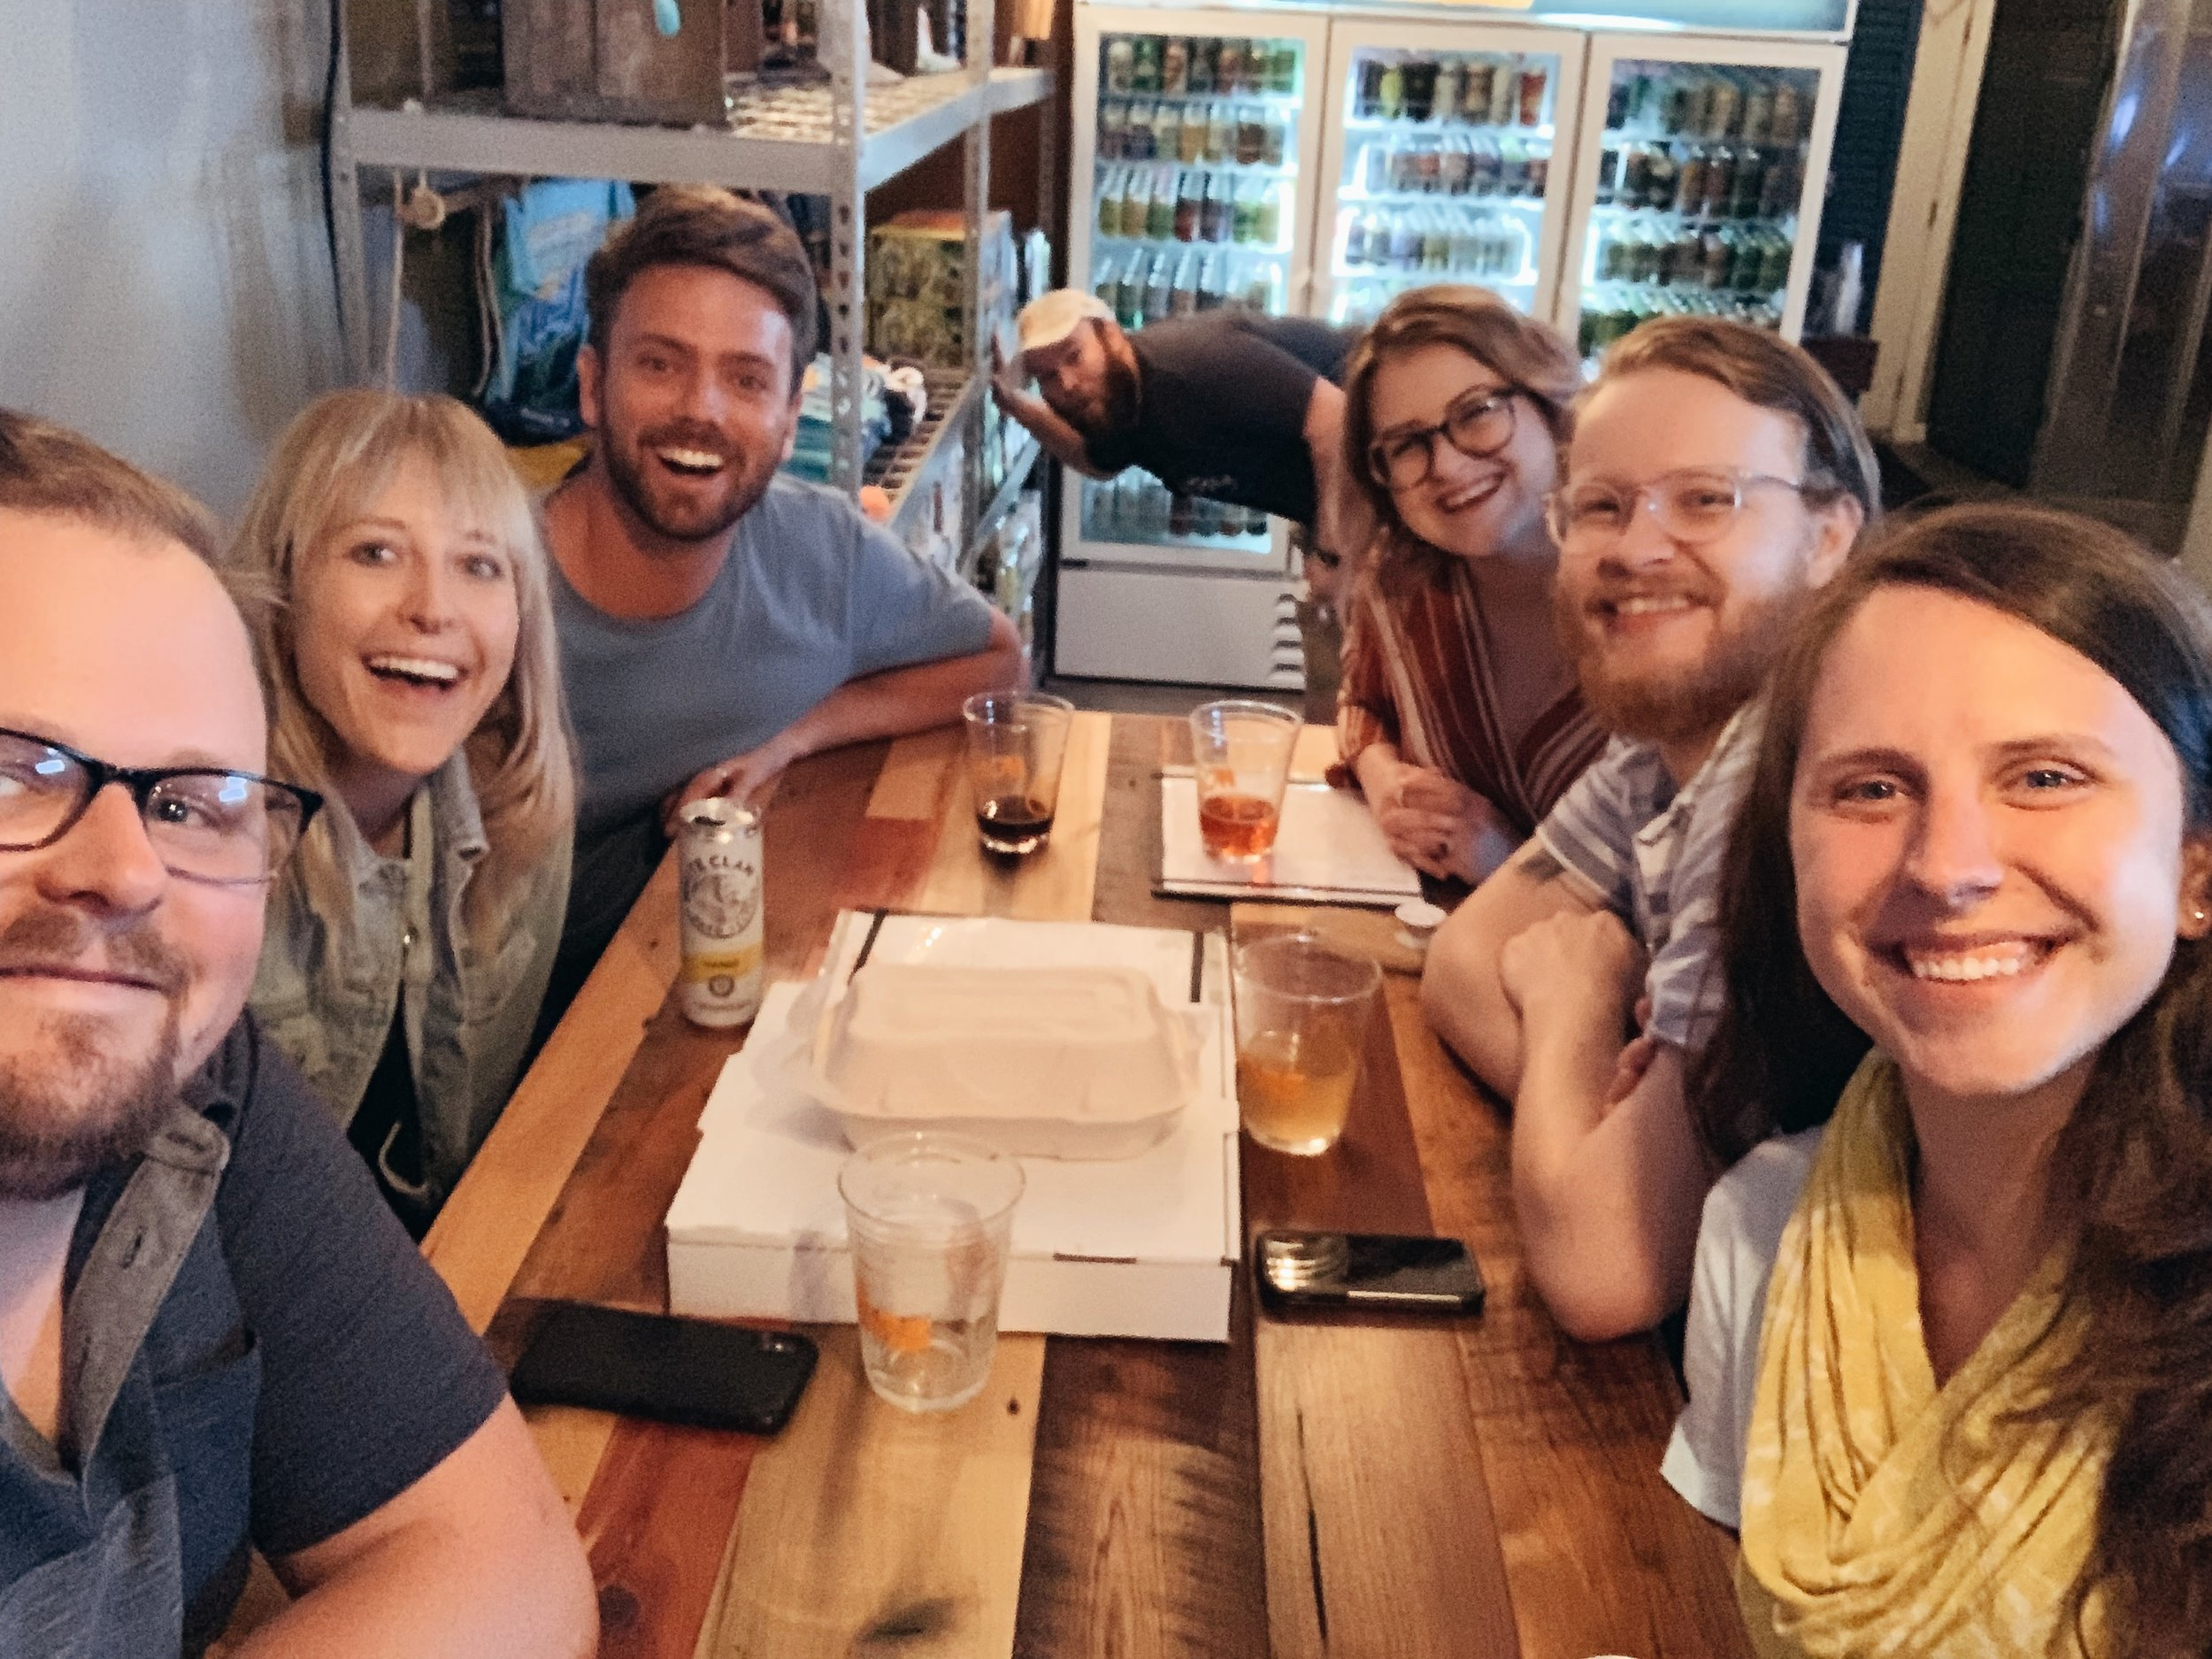 We left with more knowledge of beer, but also some new pals!